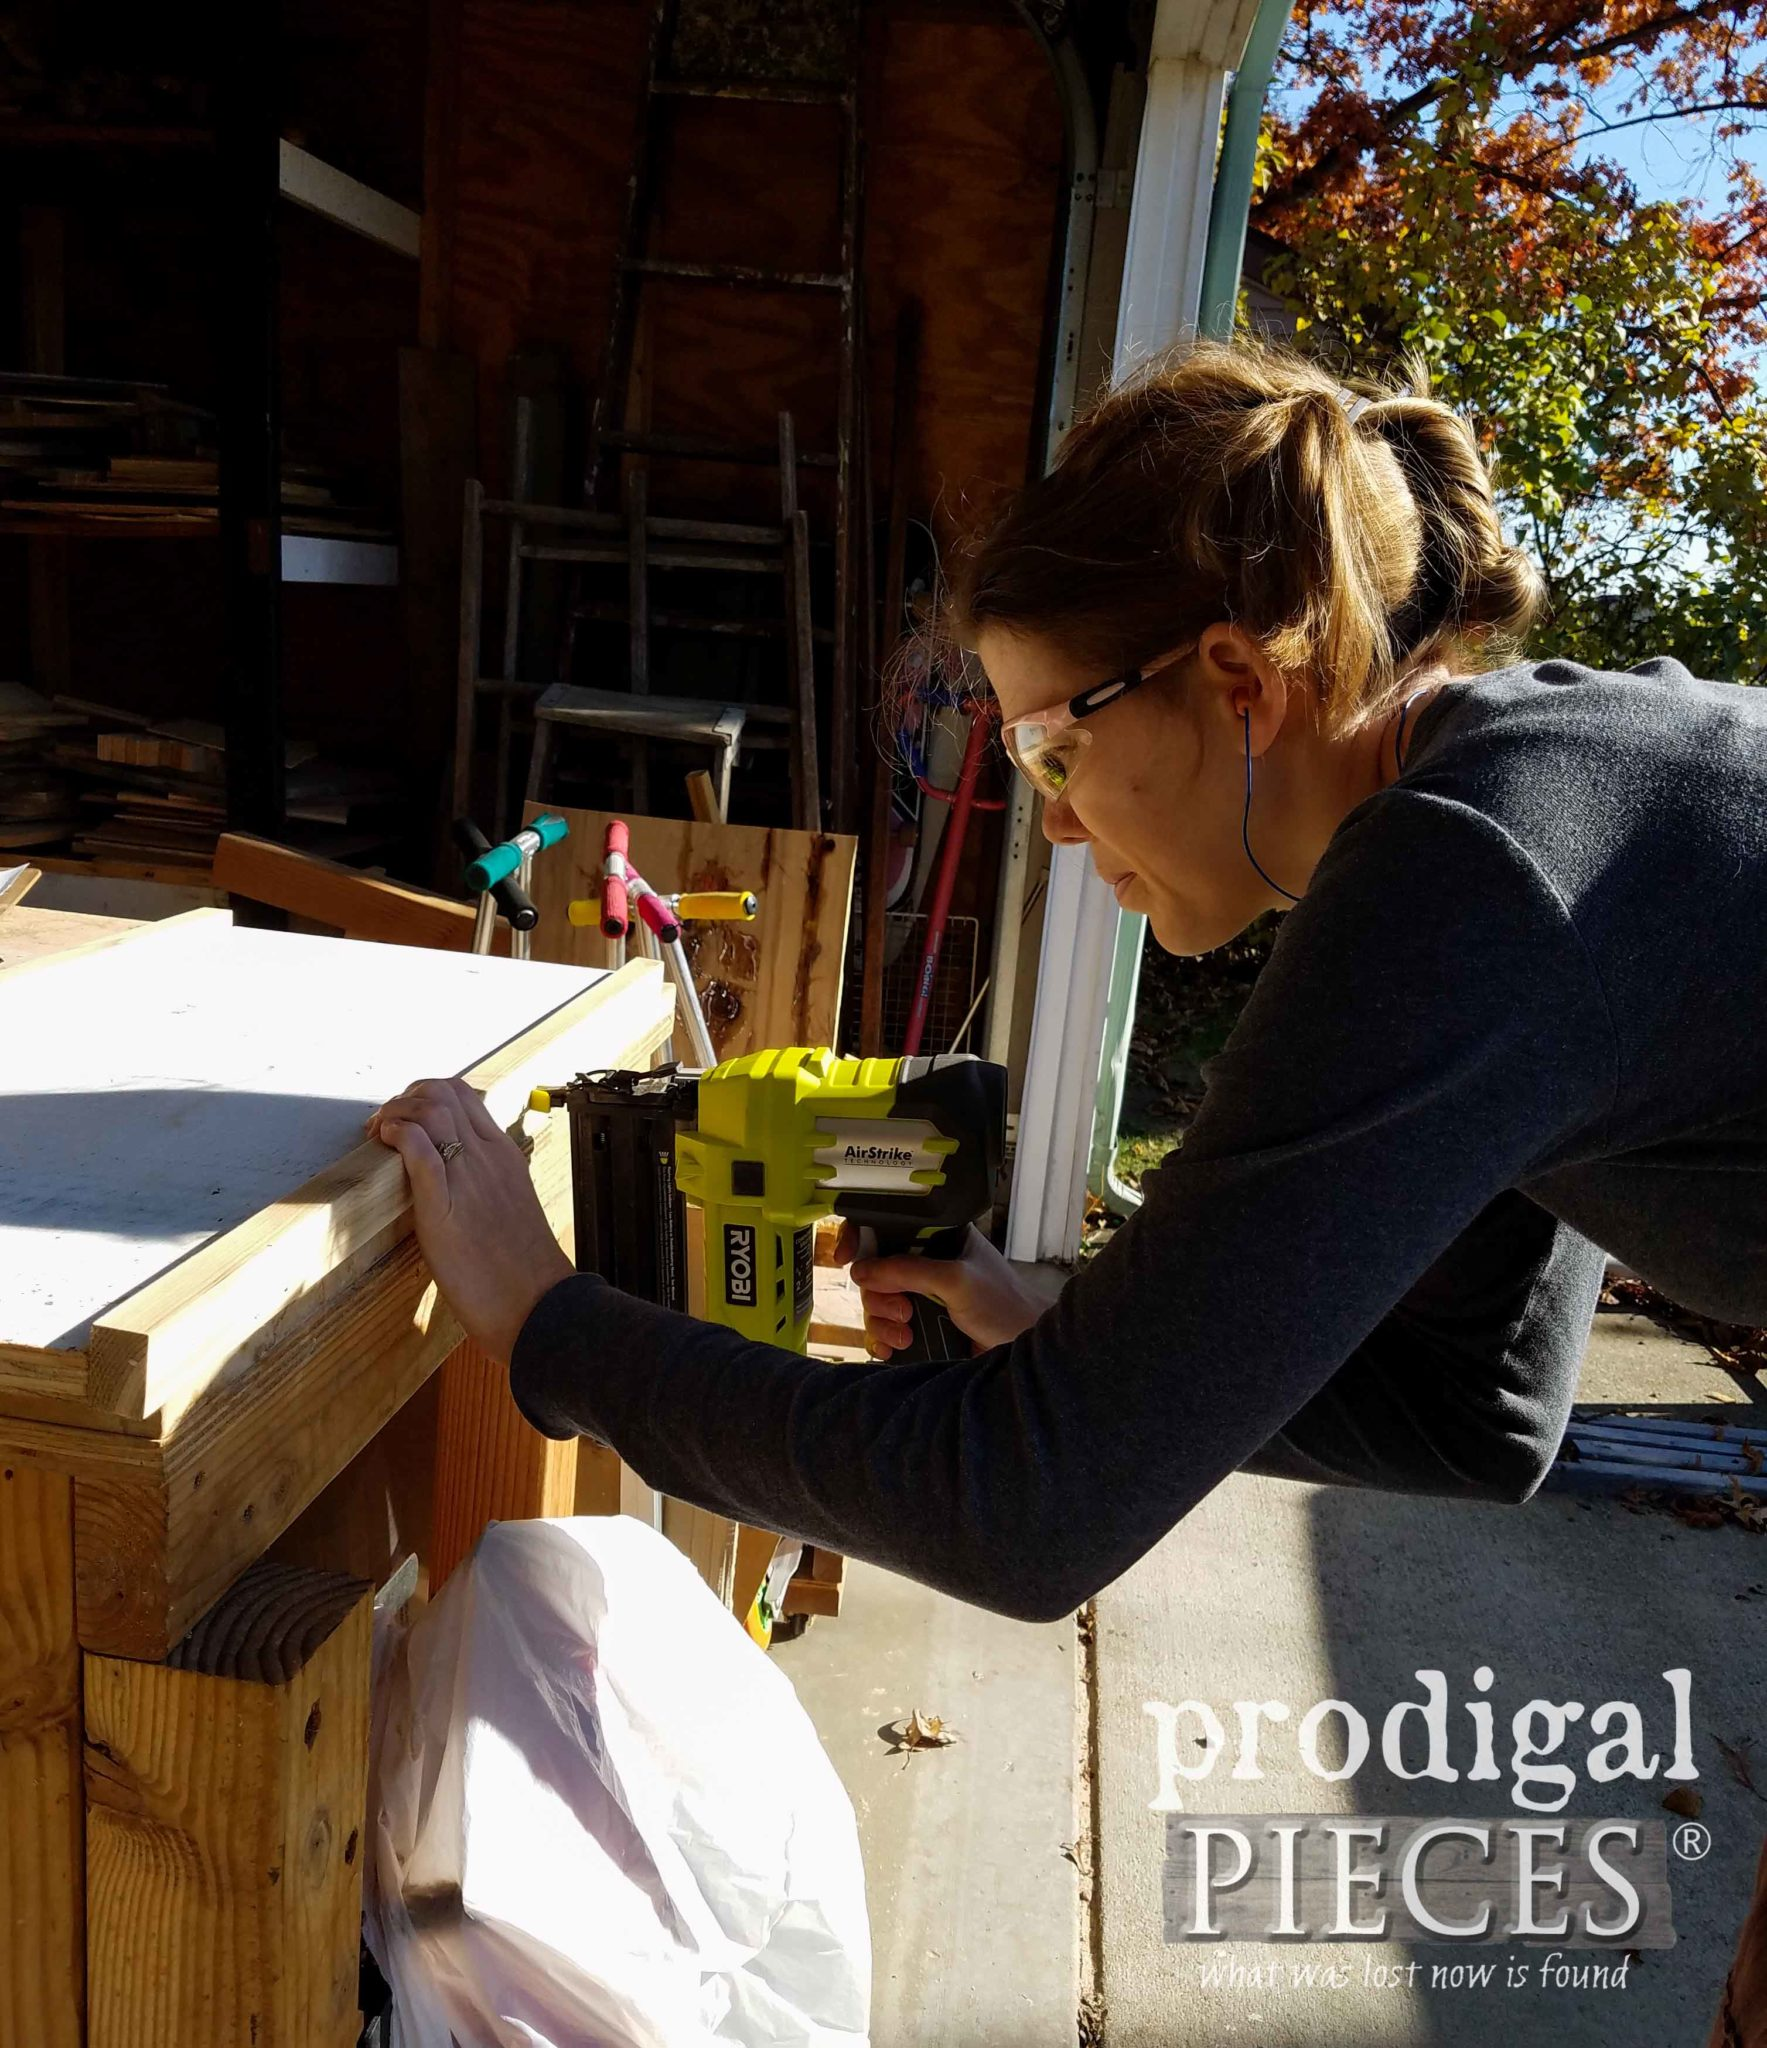 Ryobi AirStrike Nailer for Building Reclaimed Cart by Larissa of Prodigal Pieces | prodigalpieces.com